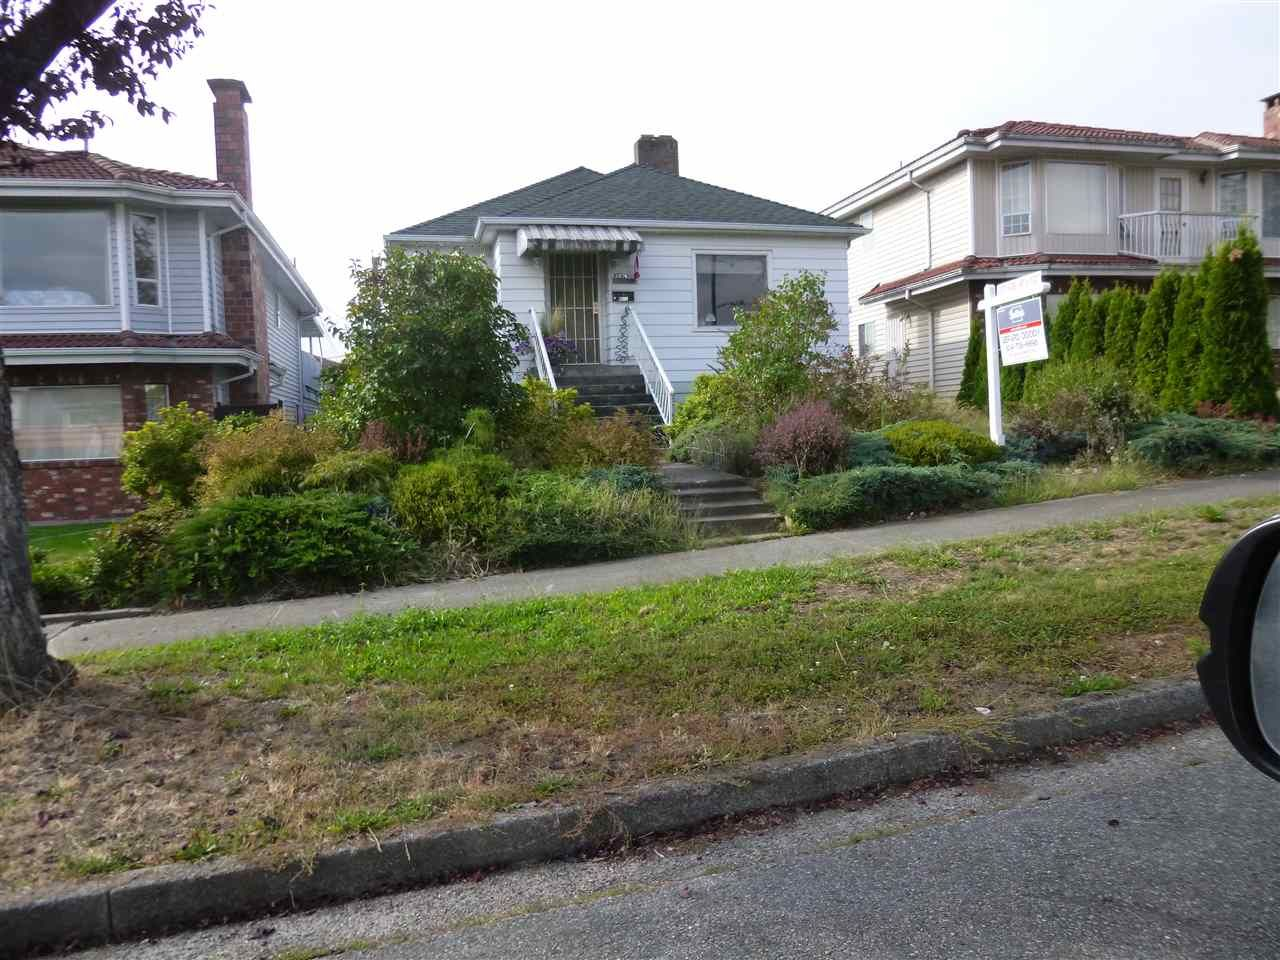 Main Photo: 2976 E 42ND Avenue in Vancouver: Killarney VE House for sale (Vancouver East)  : MLS®# R2102970